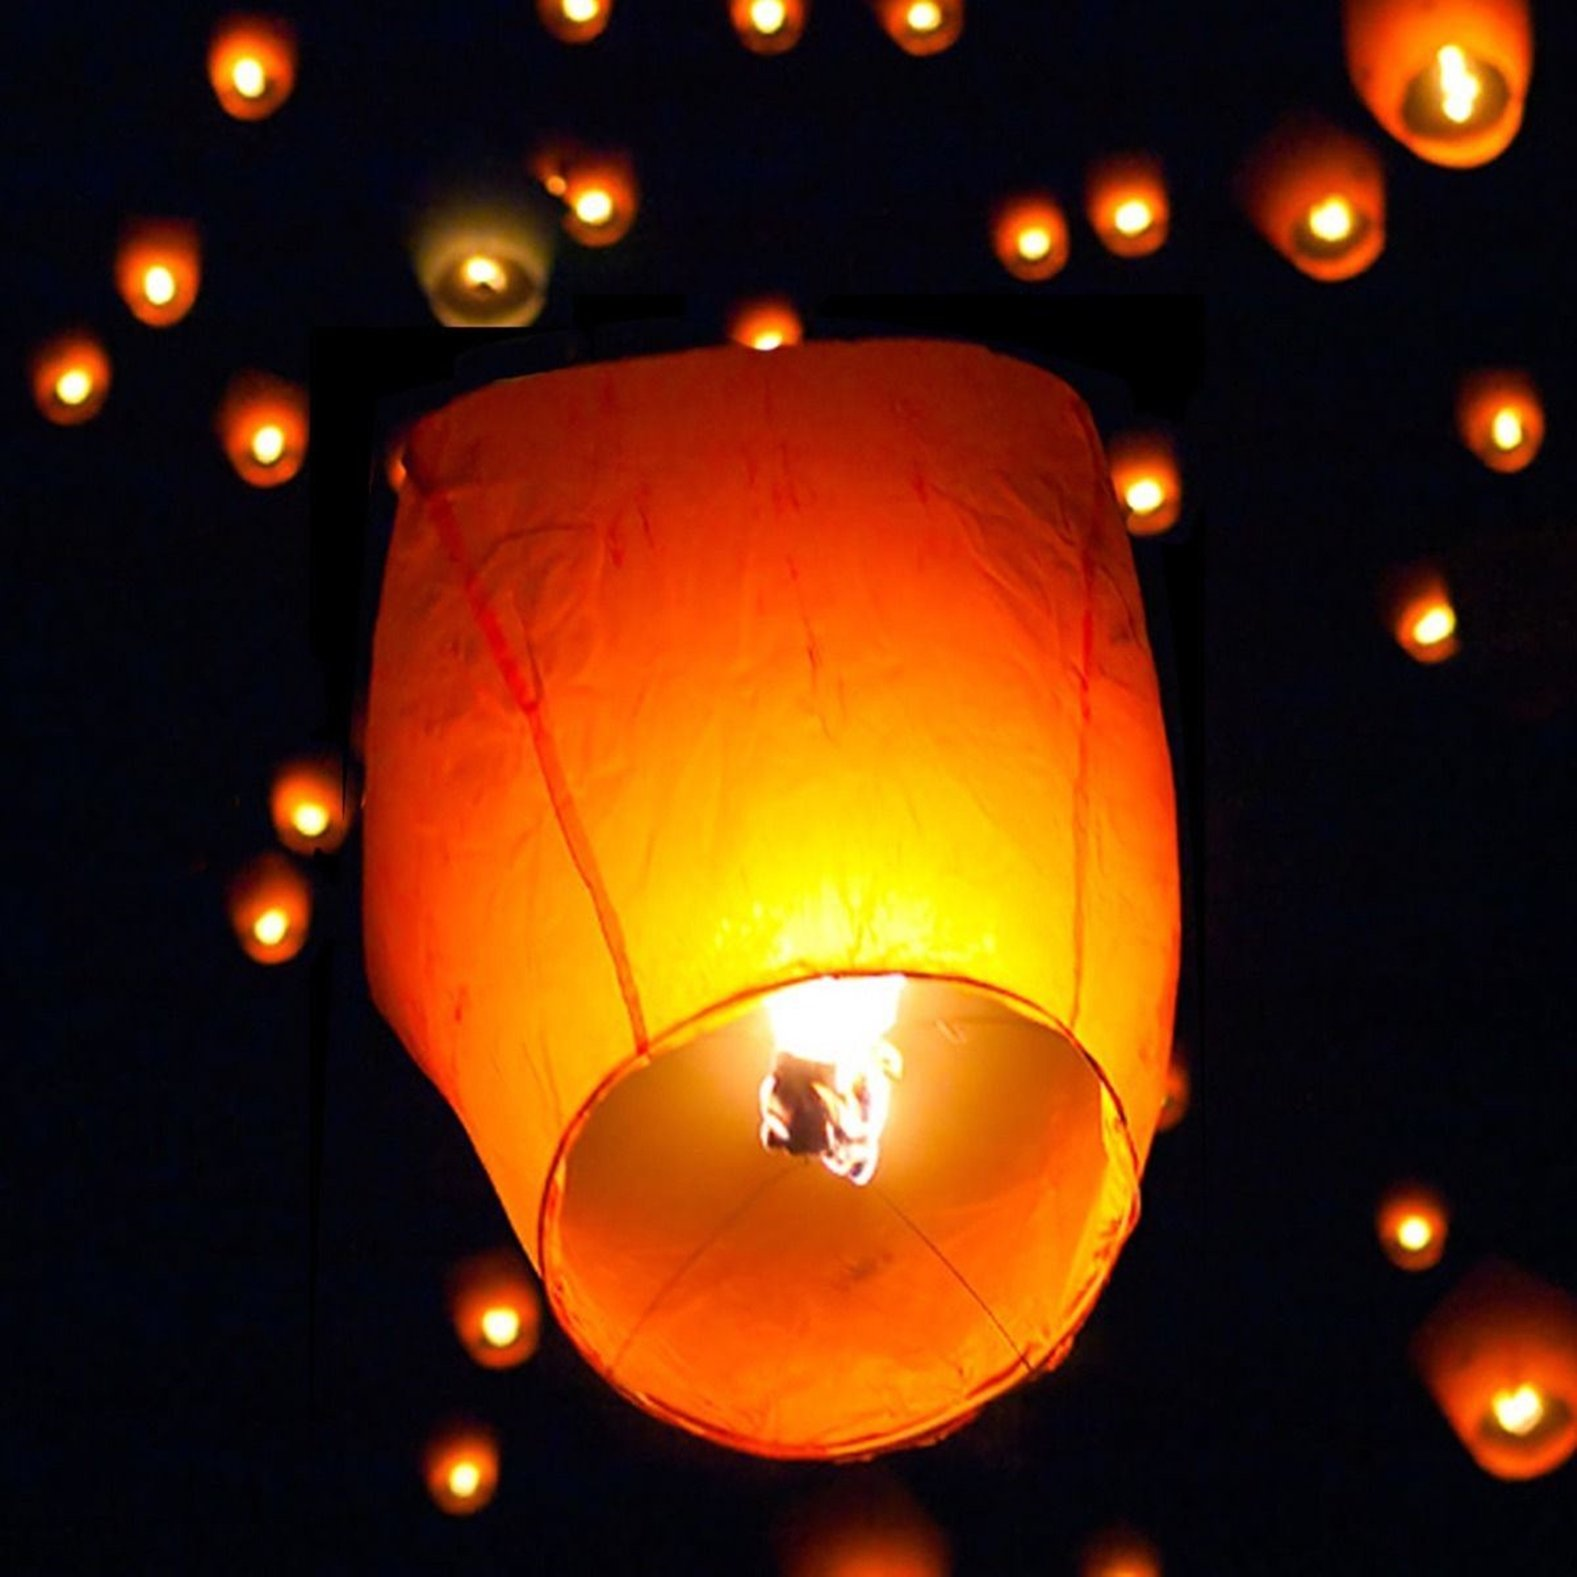 50 Pc/Set Chinese Lantern Night Lights Fire Fly Candle Wish Party Wedding Light-Weight Lamp Heart-stopping Fashionable Type White Paper